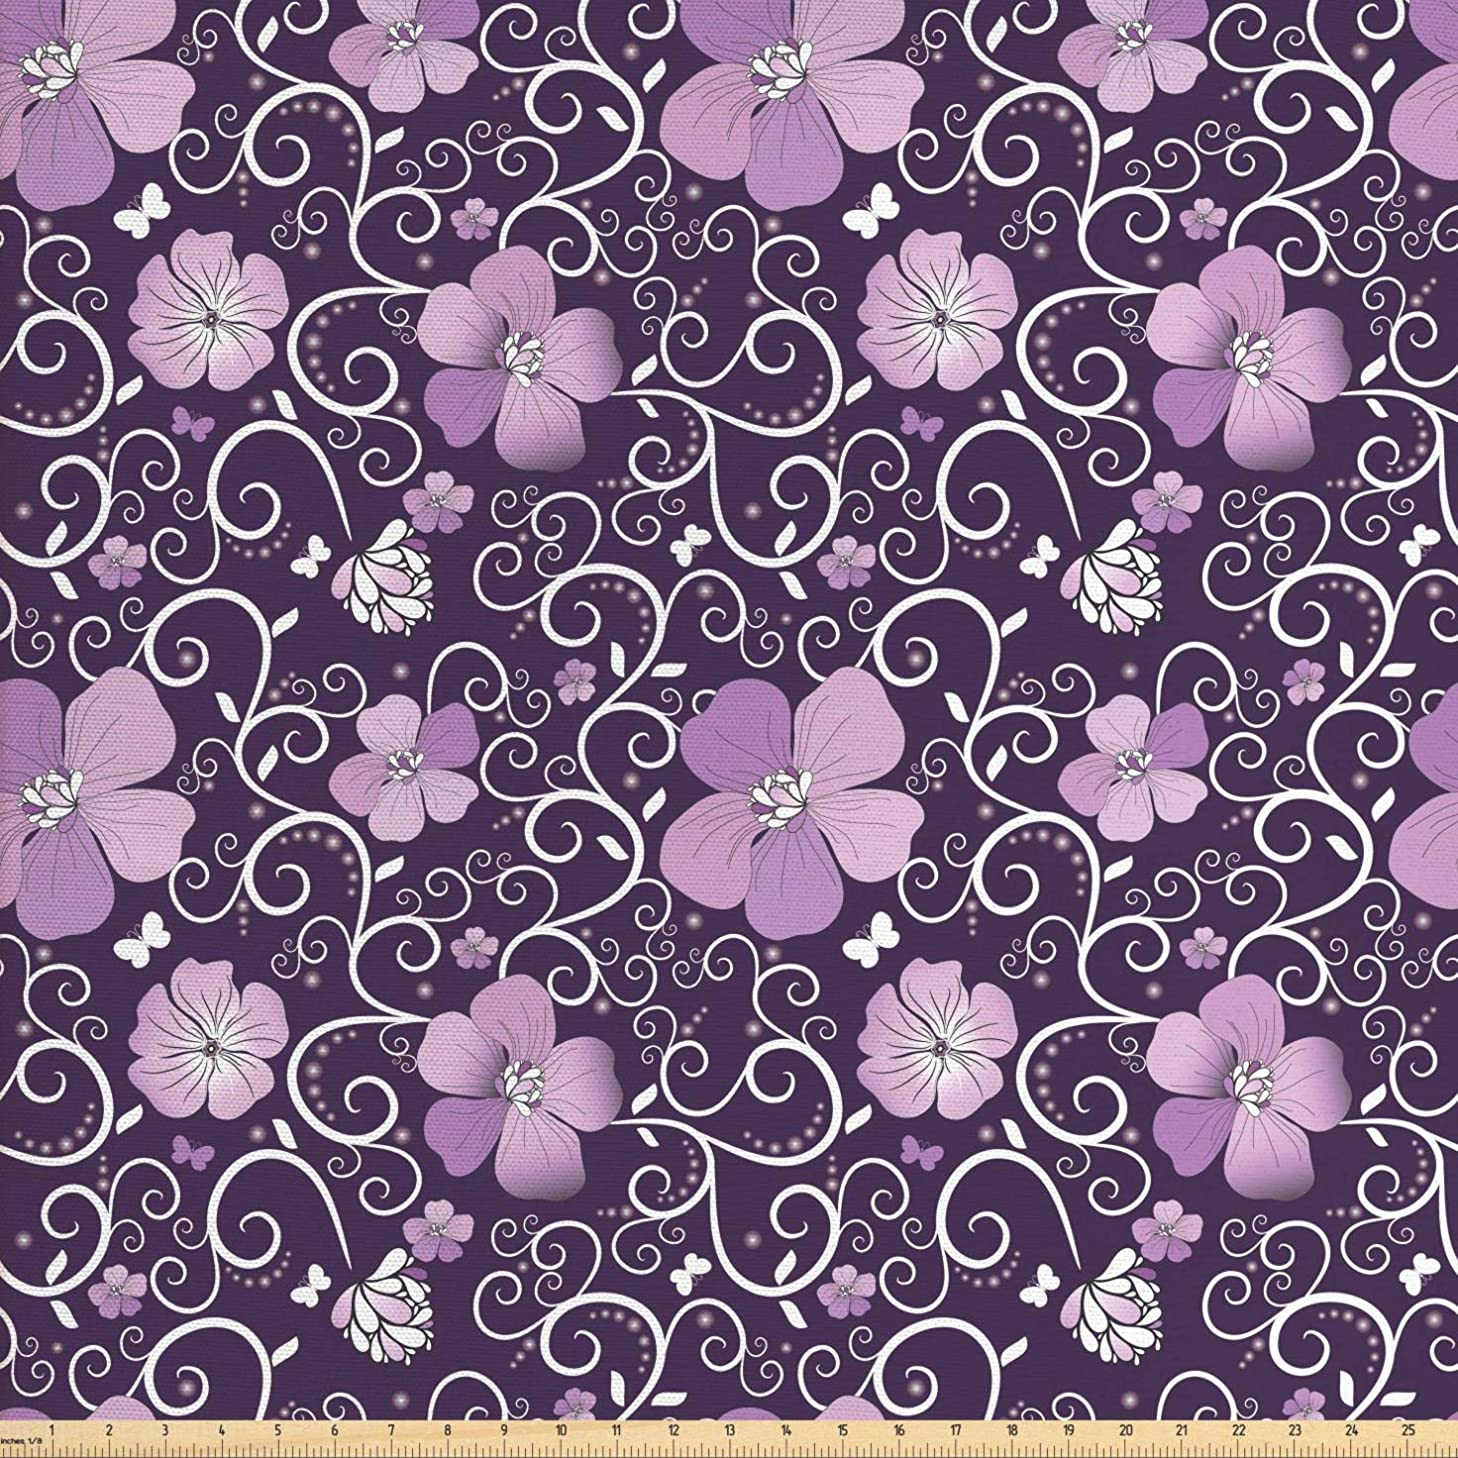 Ambesonne Floral Fabric by The Yard, Butterfly Silhouettes with Plant Flower Patterned Design Swirls Curves, Decorative Fabric for Upholstery and Home Accents, 2 Yards, Lilac Dark Purple White